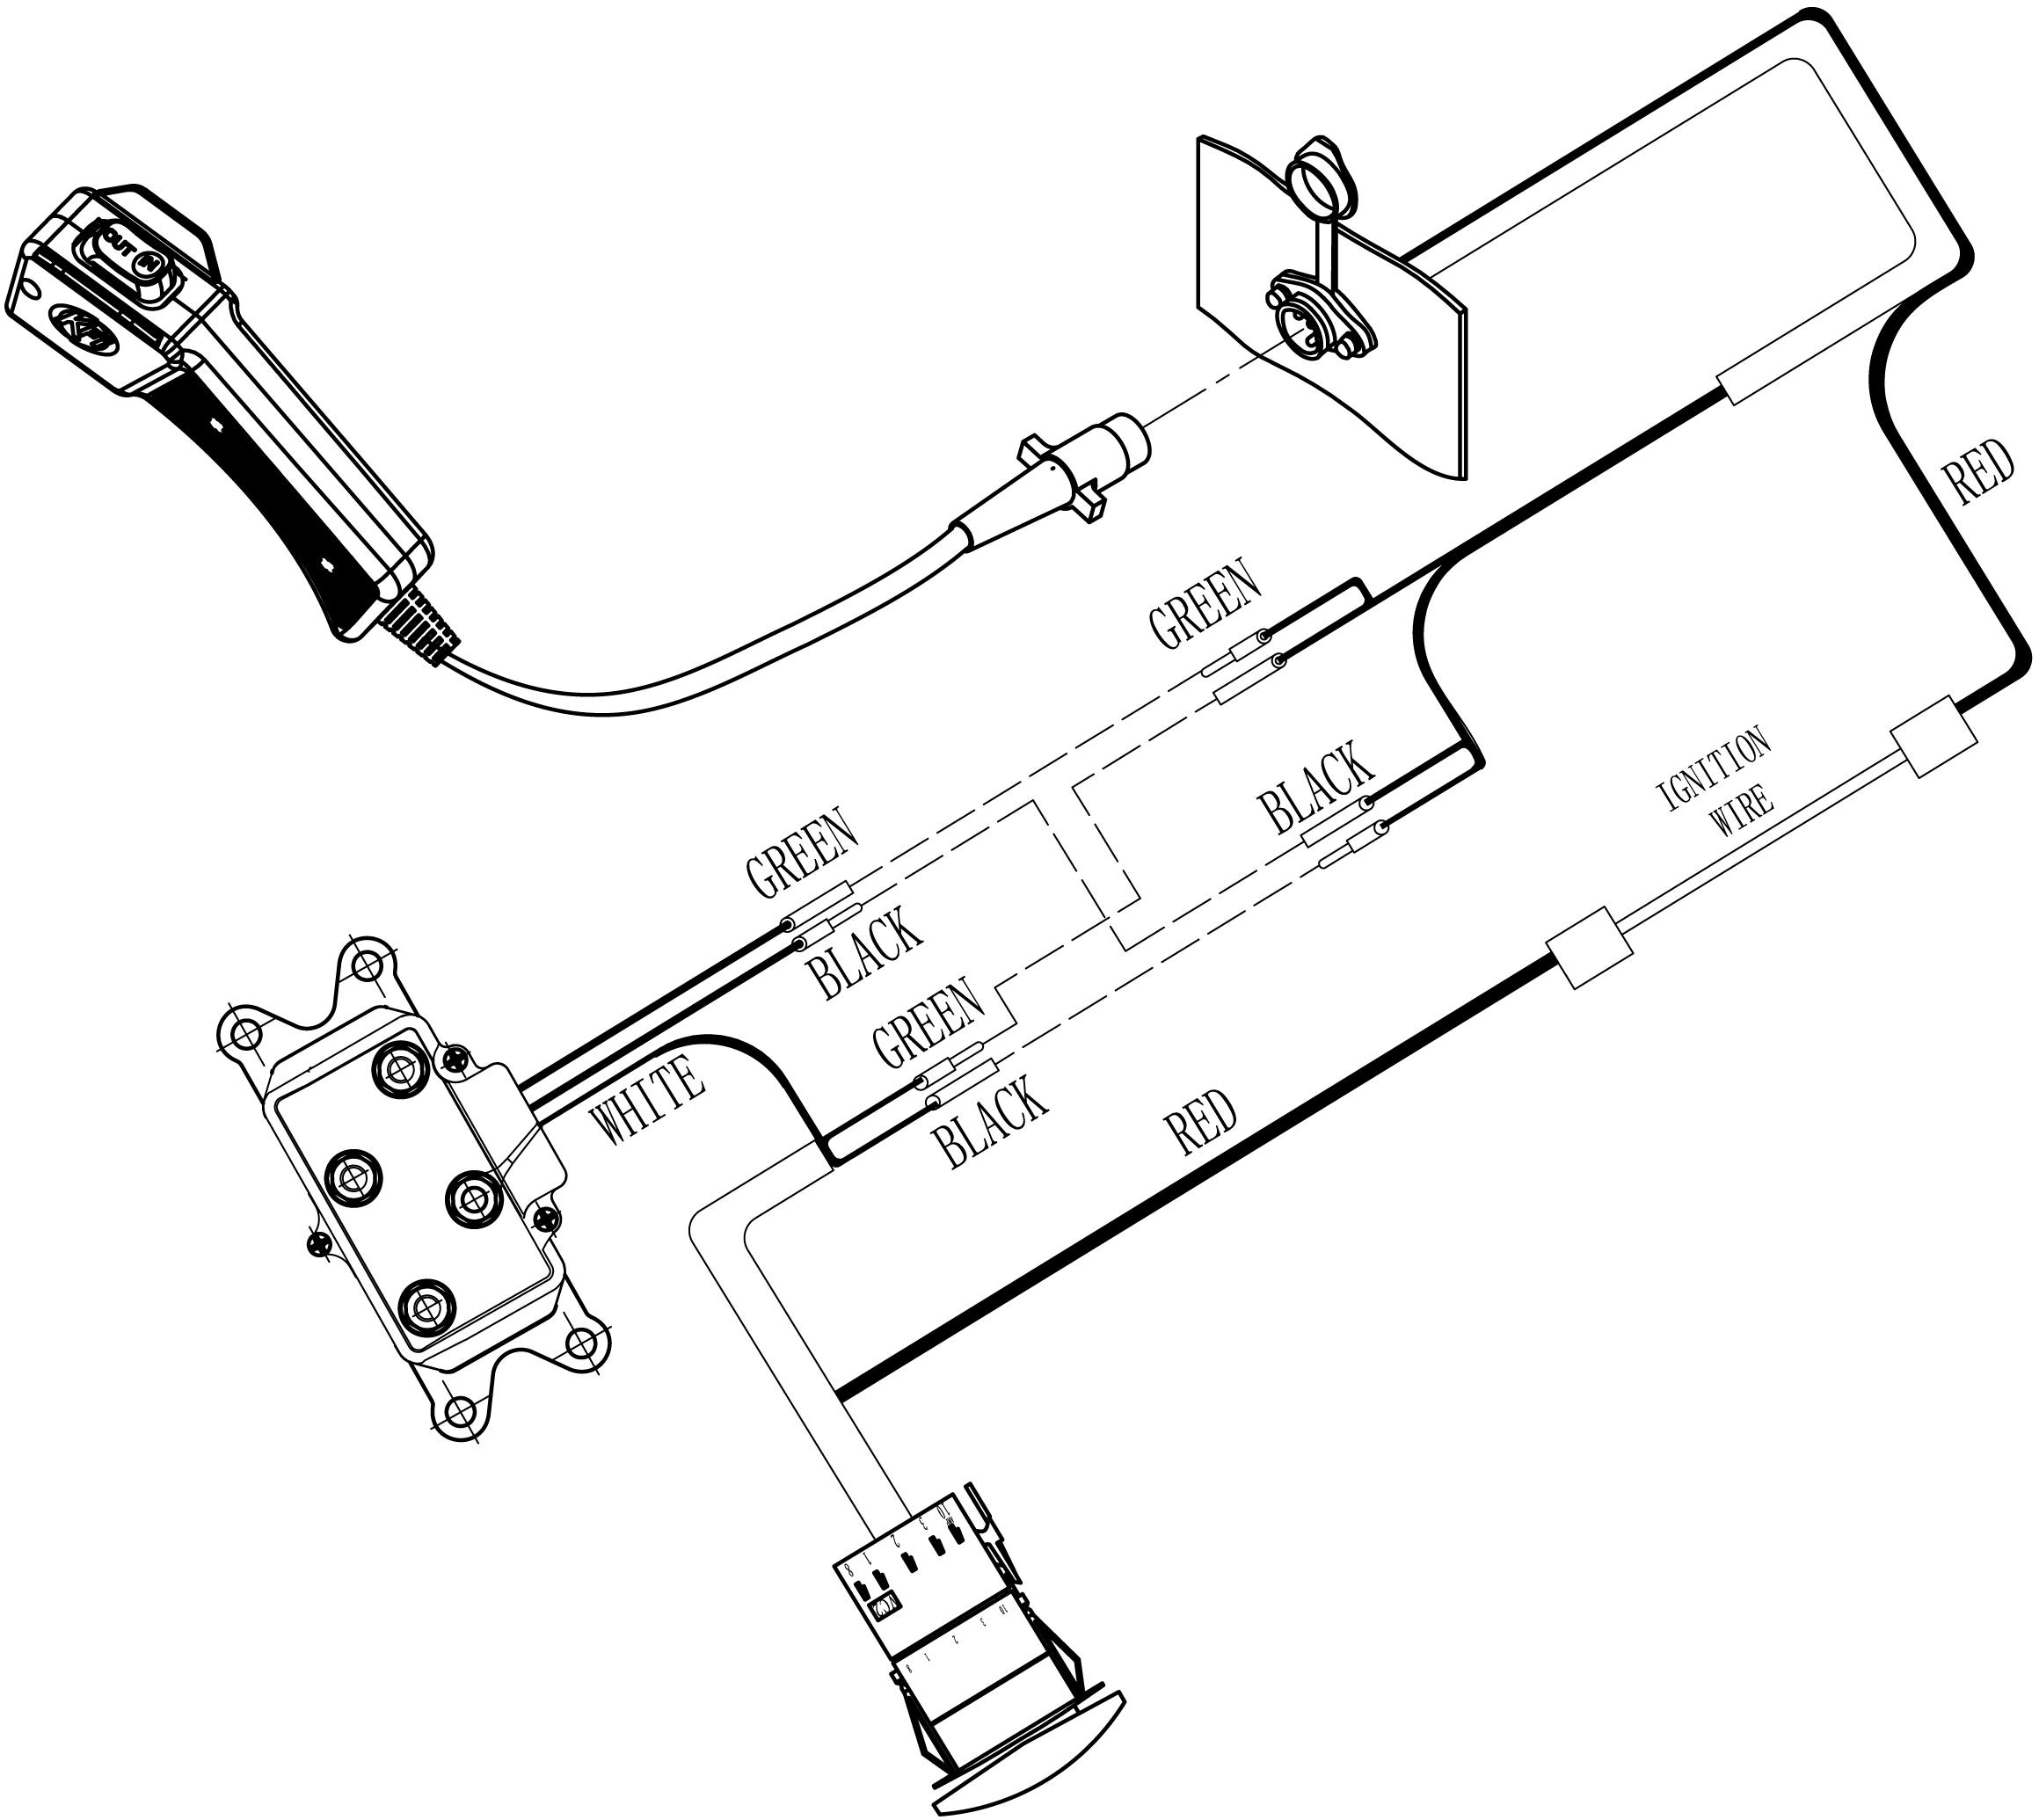 ... KFI_Carling_Switch_Wring_Diagram assault winch contactor kfi atv winch,  mounts and accessories superwinch terra 45 wiring diagram